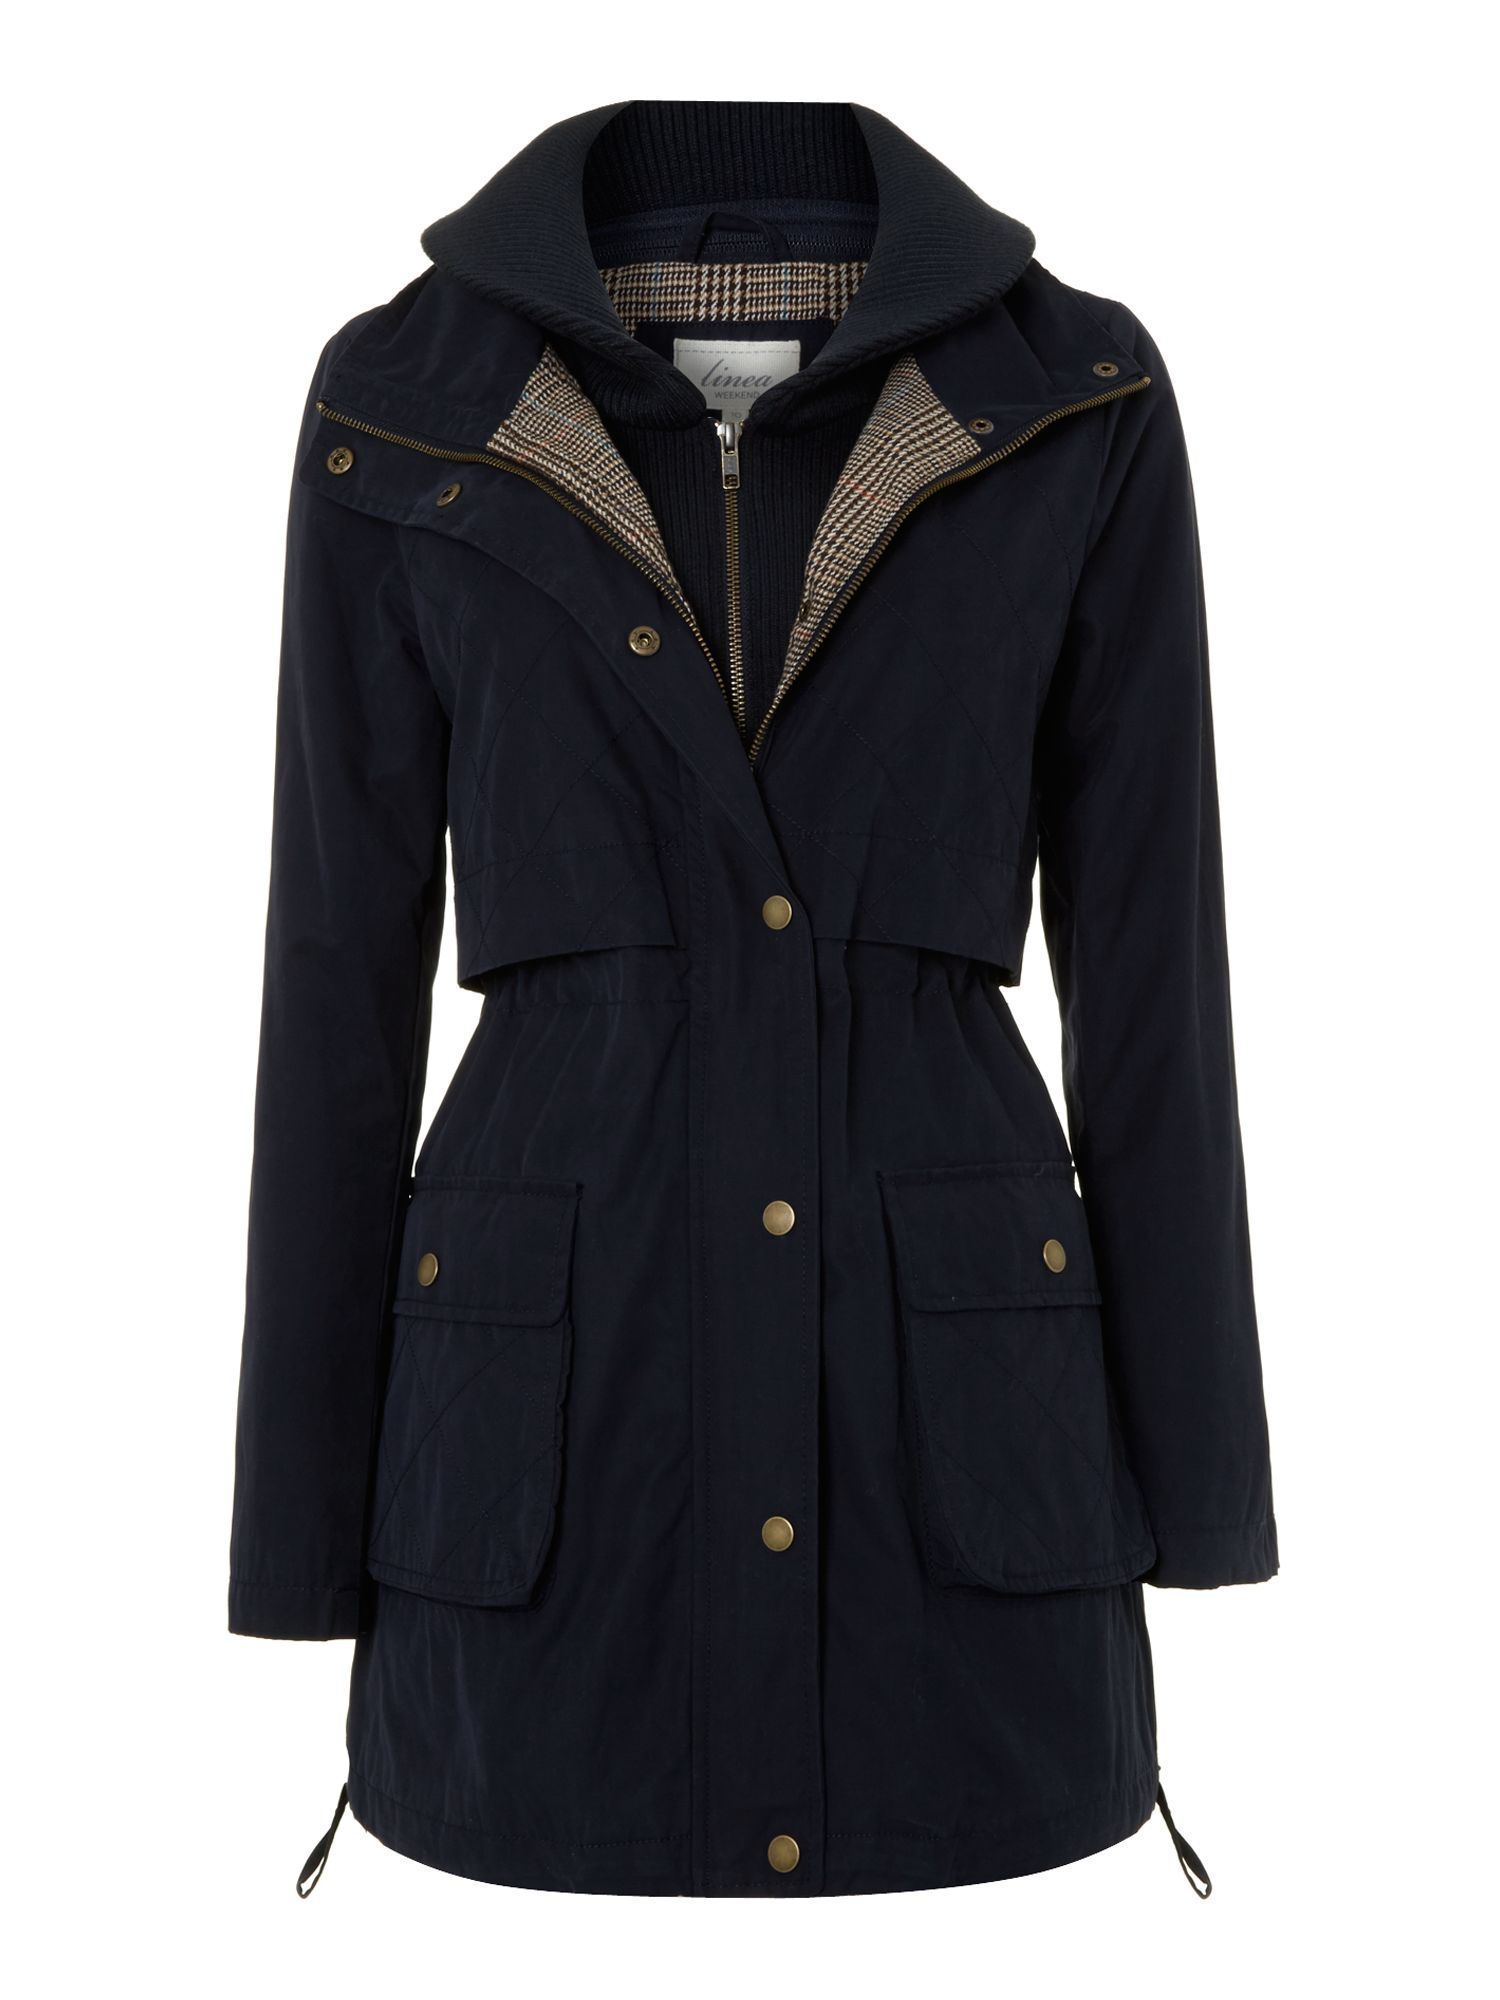 Ladies wax parka coat